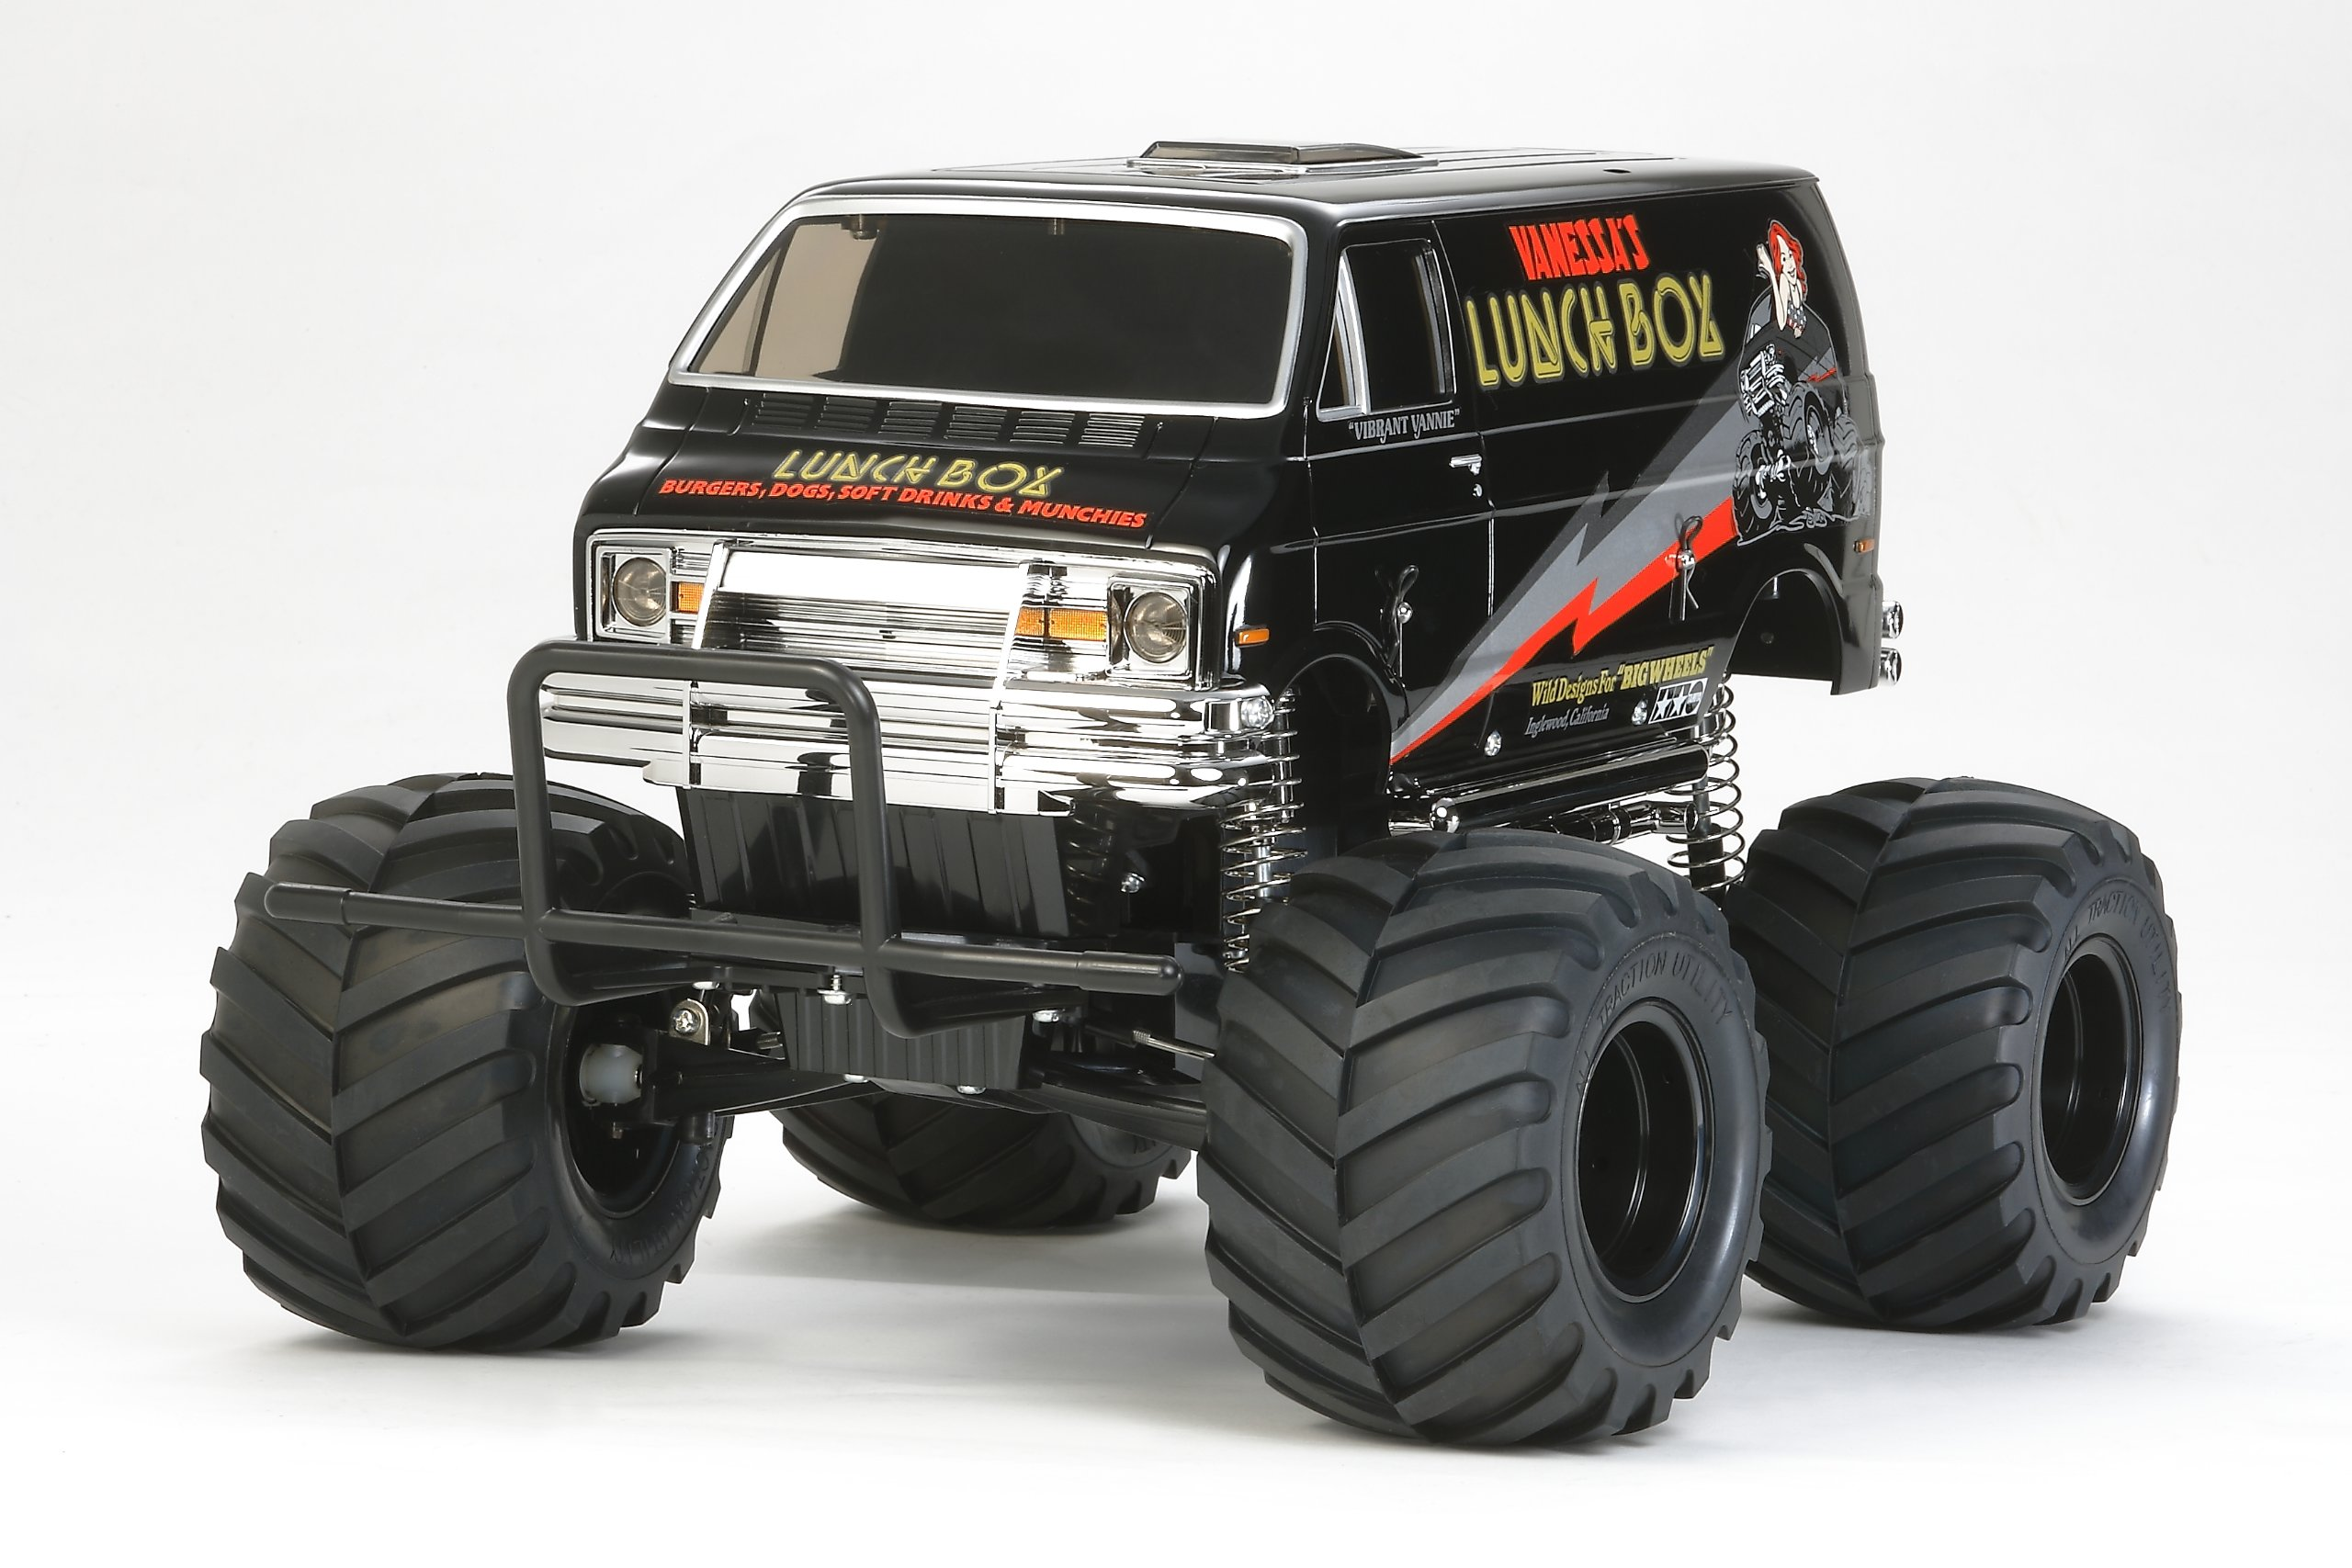 Tamiya 1/10 RC Car Series No.546 1/12 lunch box Black Edition 58546 by Tamiya